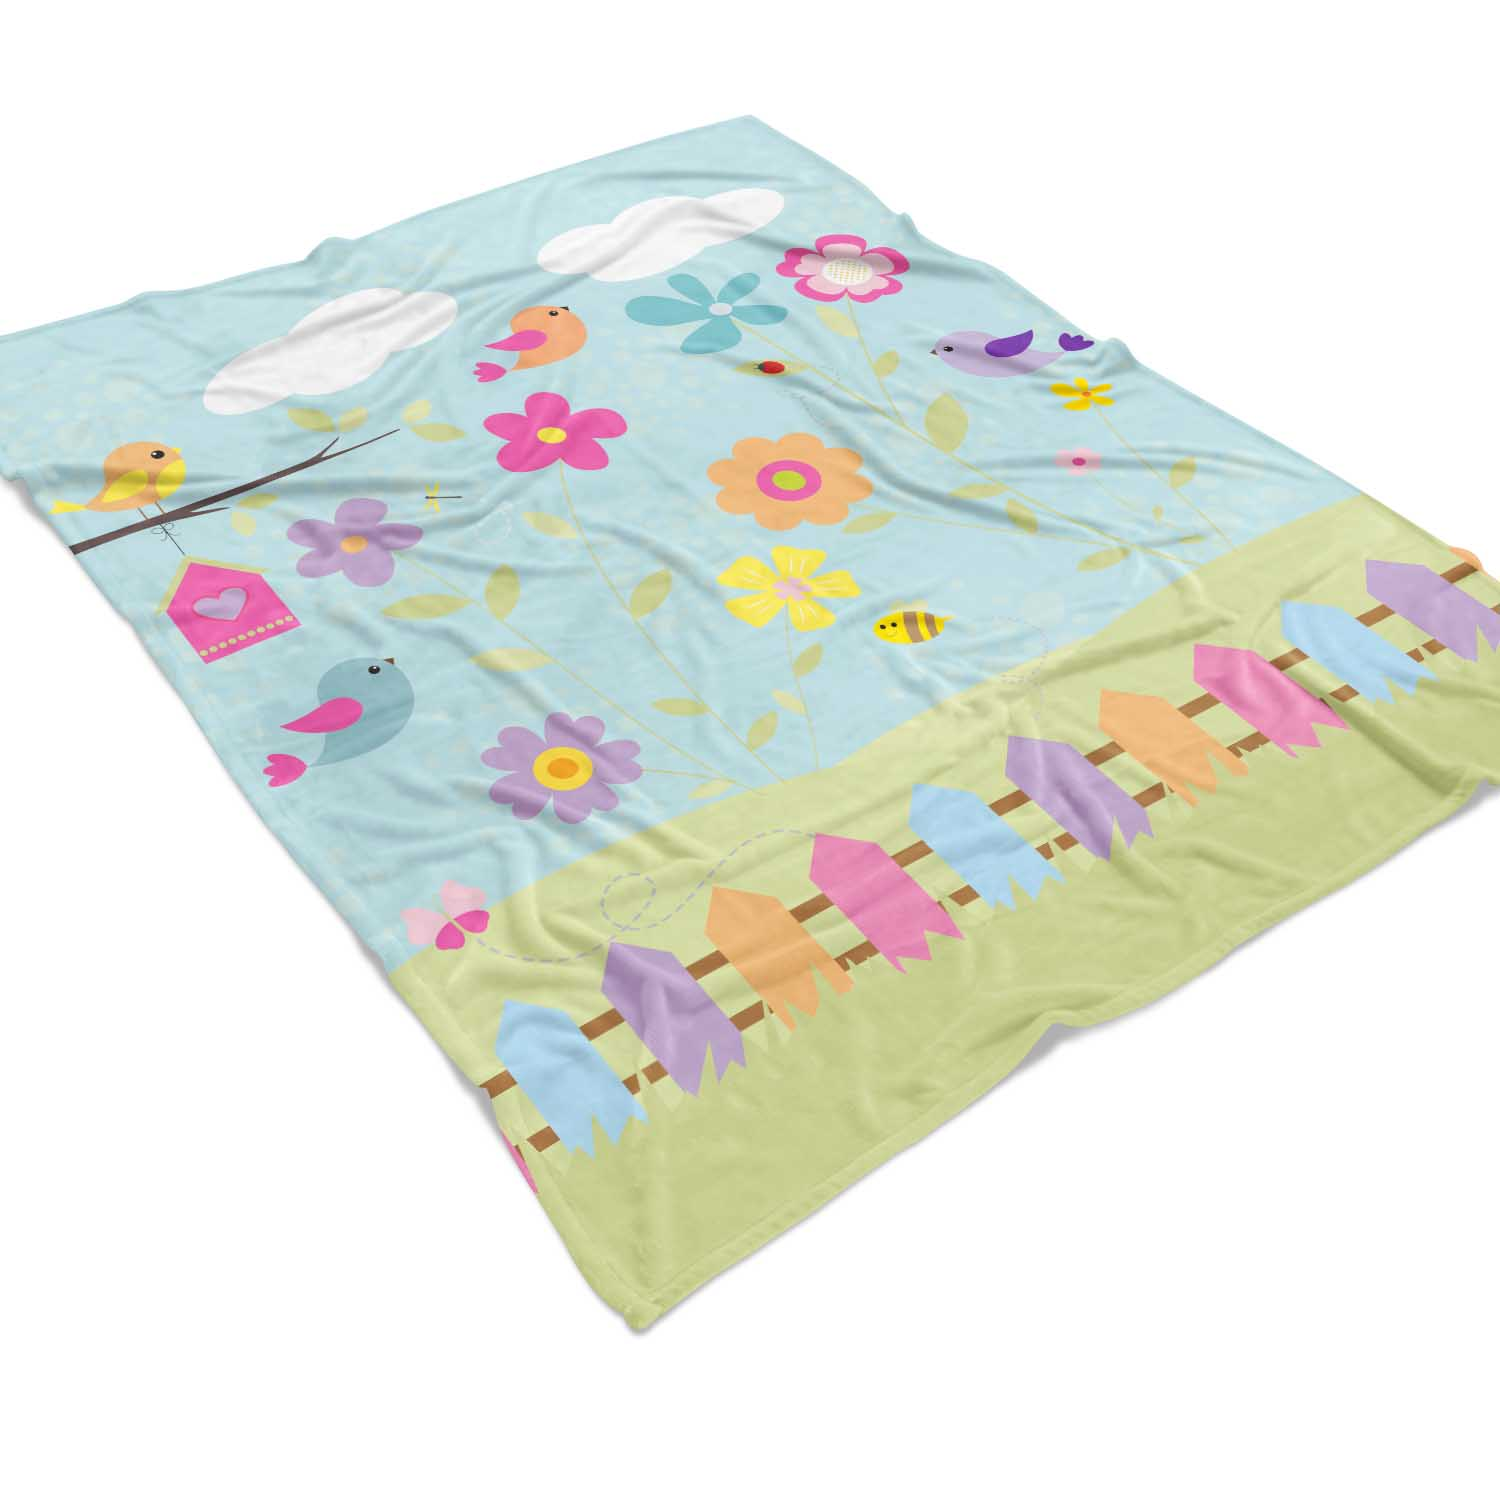 PKFLBL00021-TweetDreams-FLEECEBLANKET50x60 Tweet Dreams Little Birdies Girls Kids Minky Fleece Throw Blanket Room Decor Accesories by Pickleberry Kids